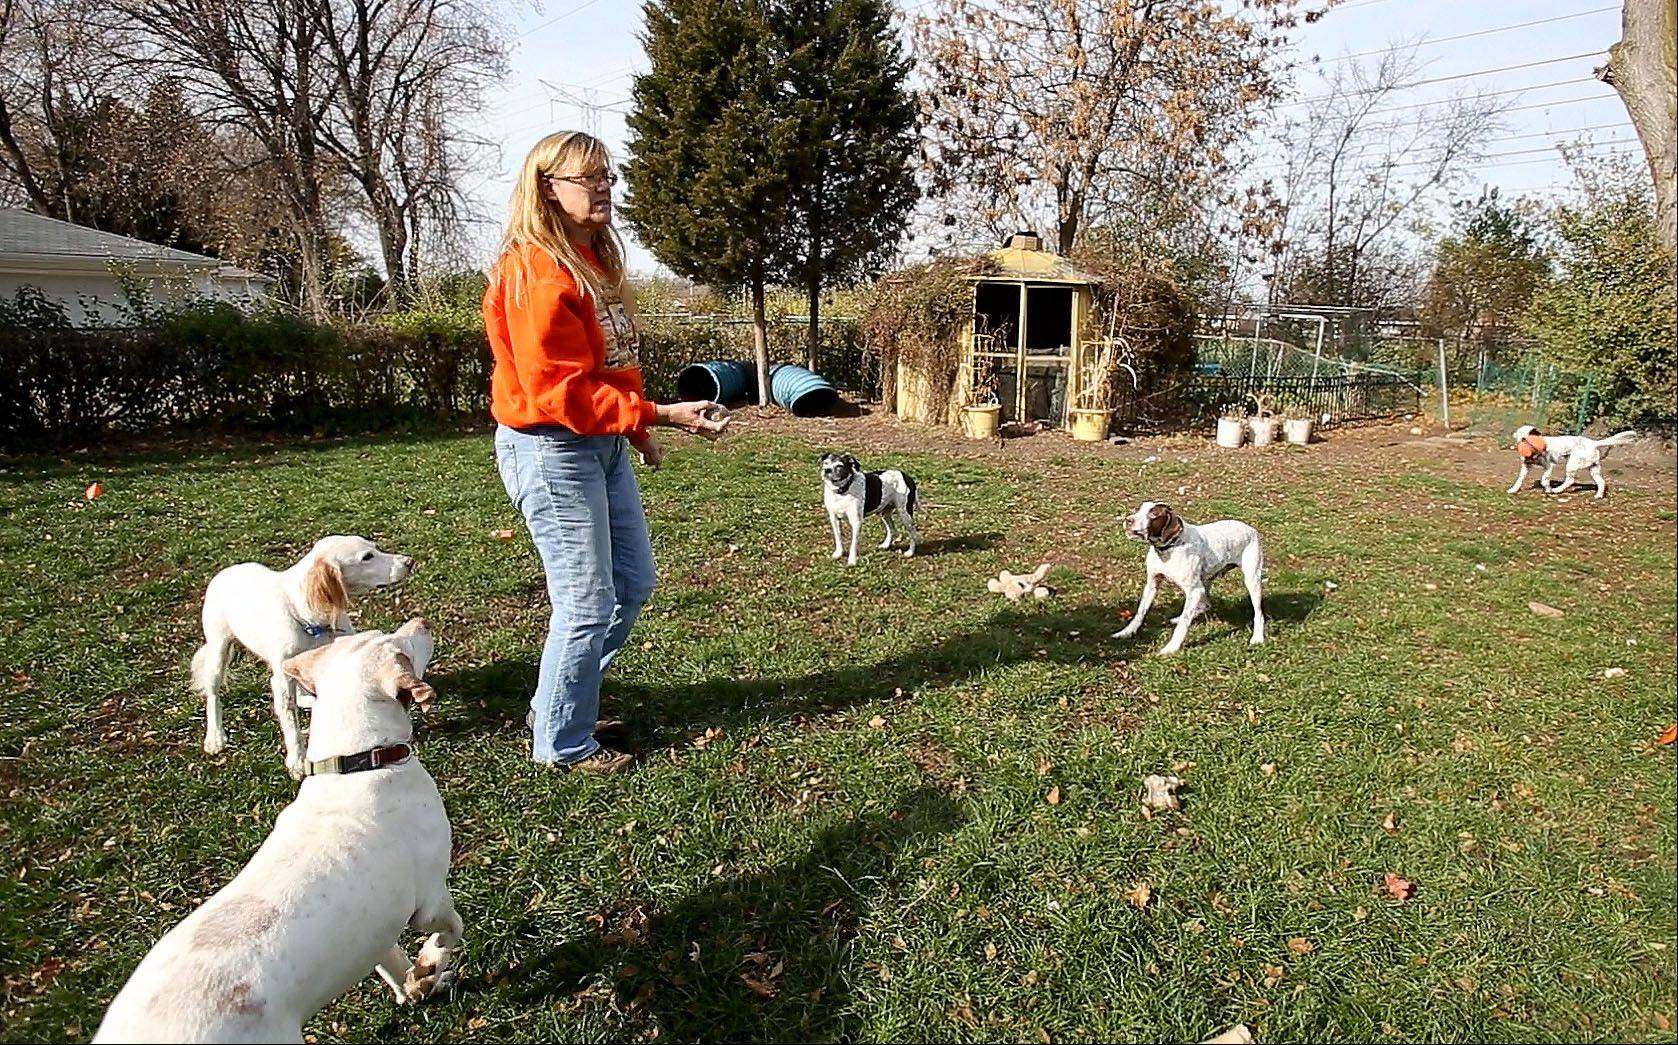 A judge is expected to decide next week whether Lisa Spakowski violated Wood Dale law by keeping more than three dogs at her home.